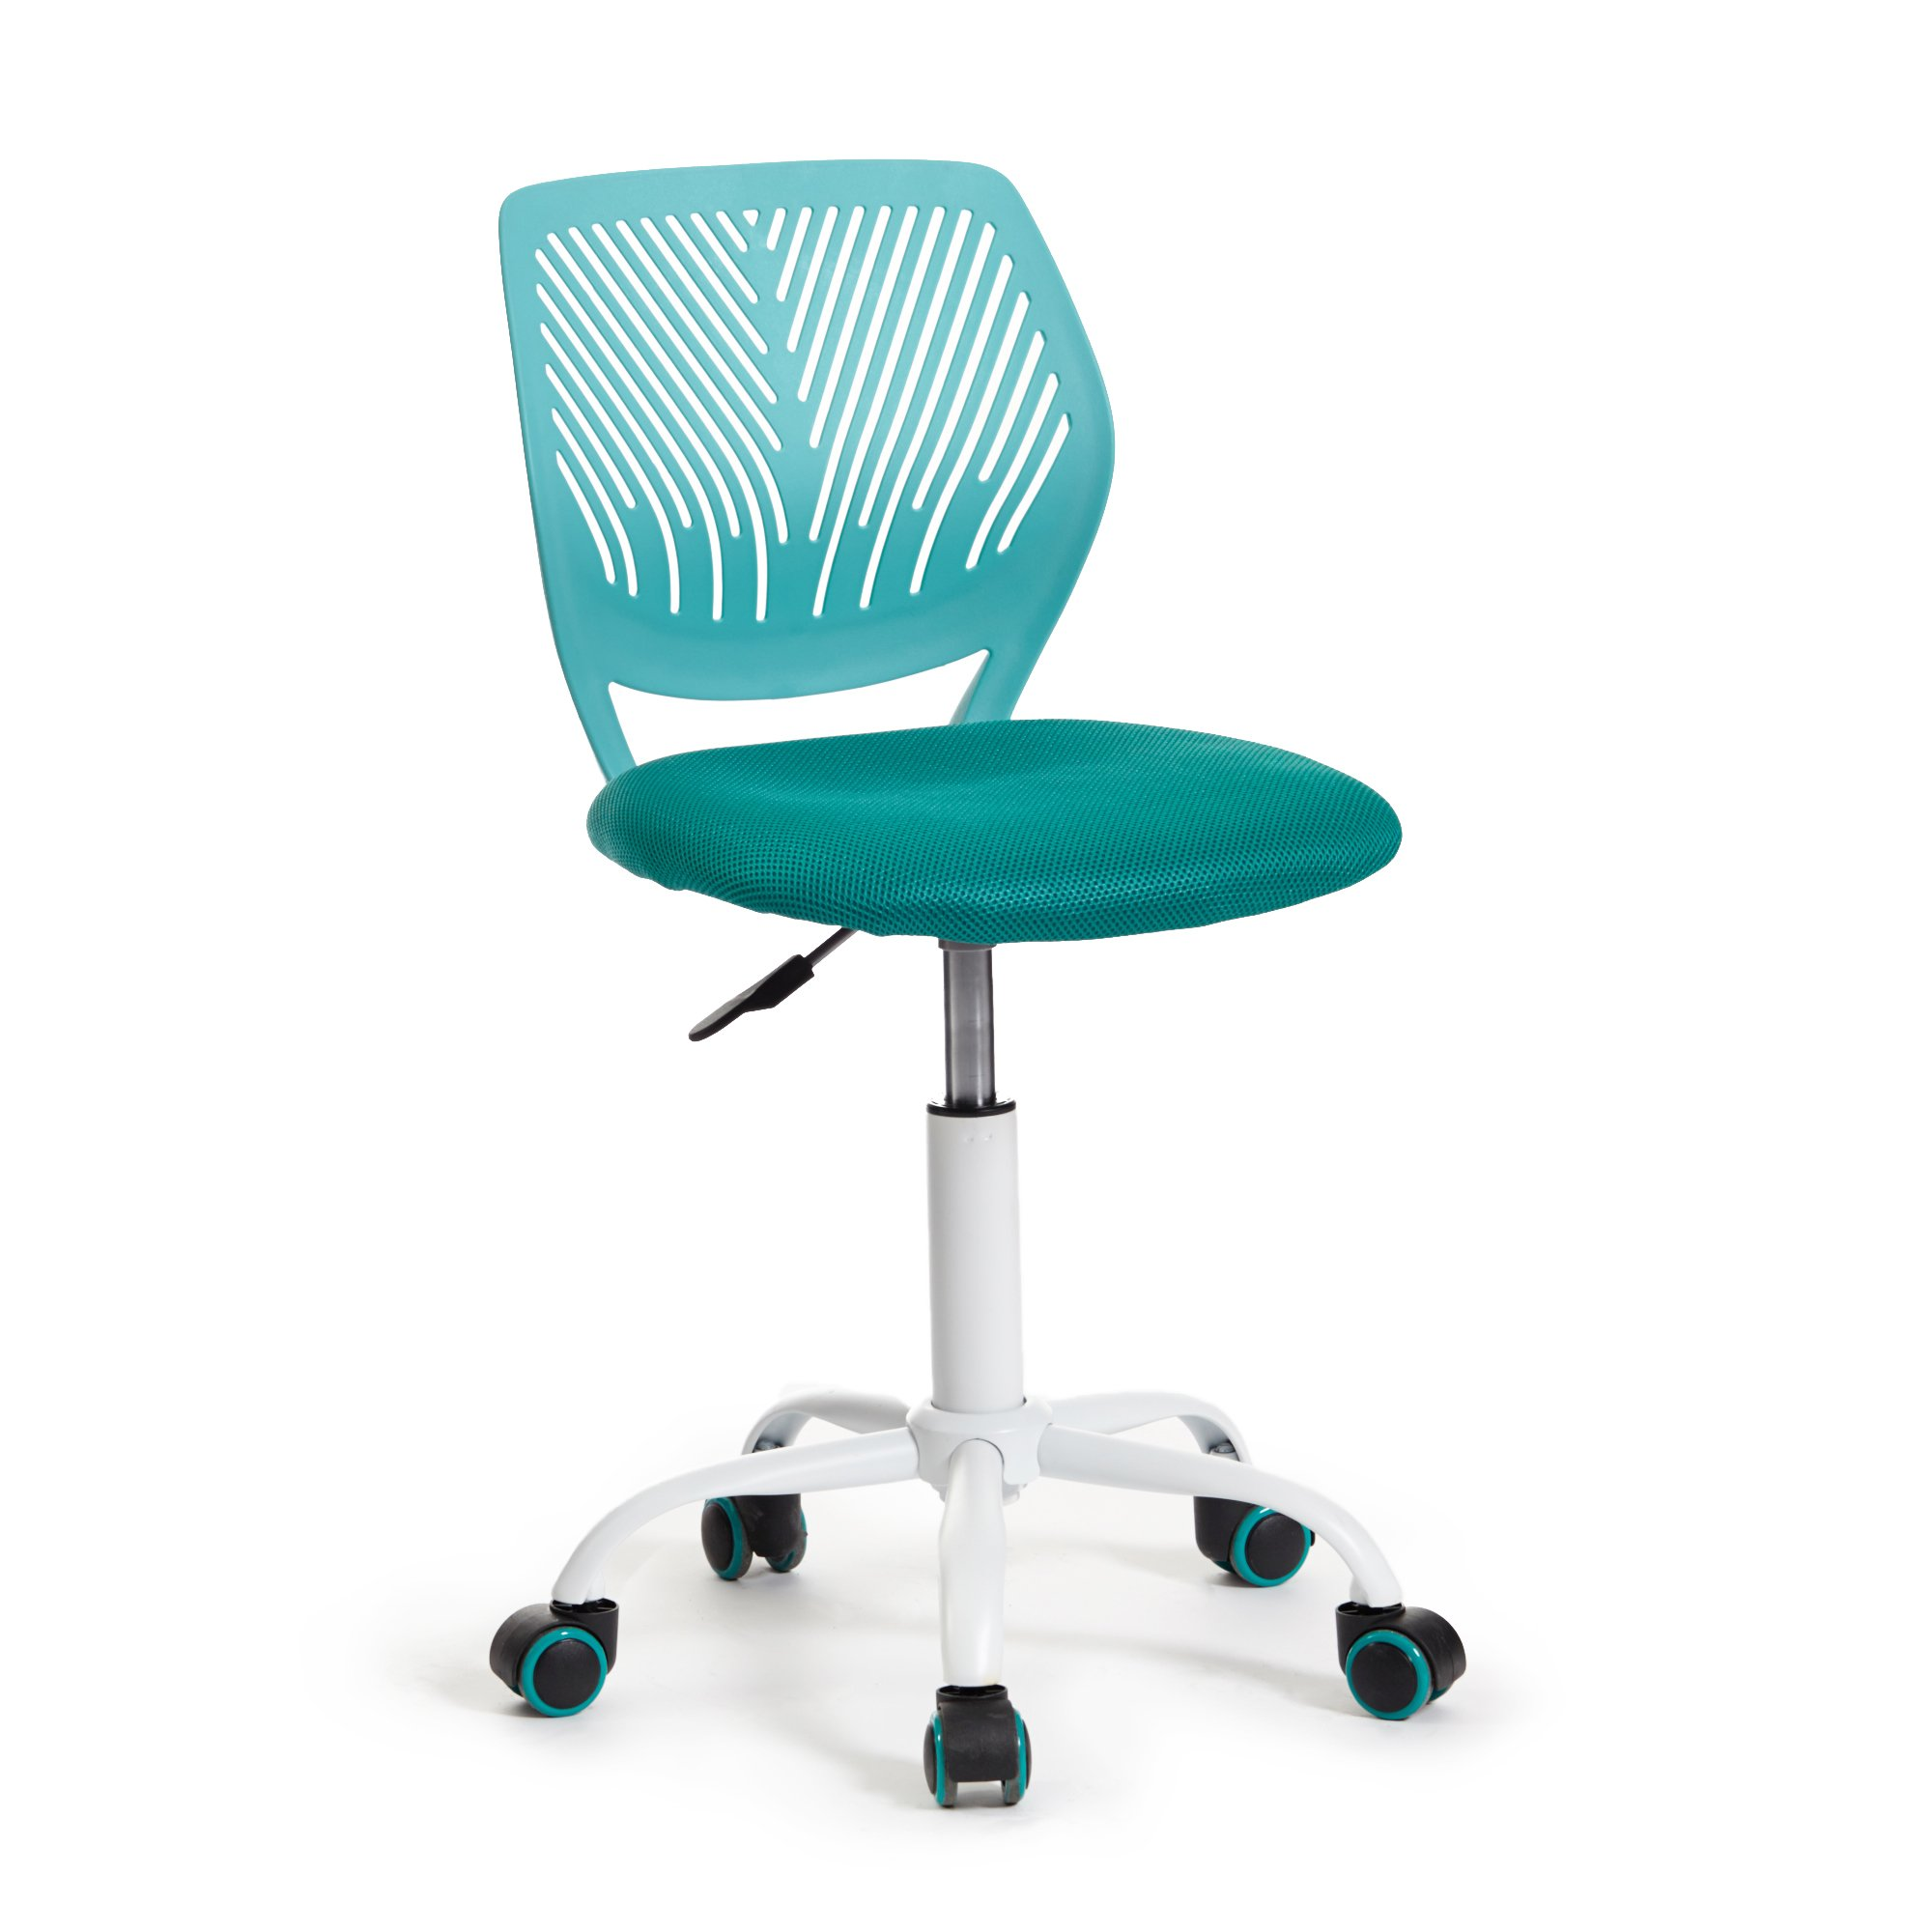 features chair stools seating archives aqua rgo chairs wrapp desk guest ltd category products